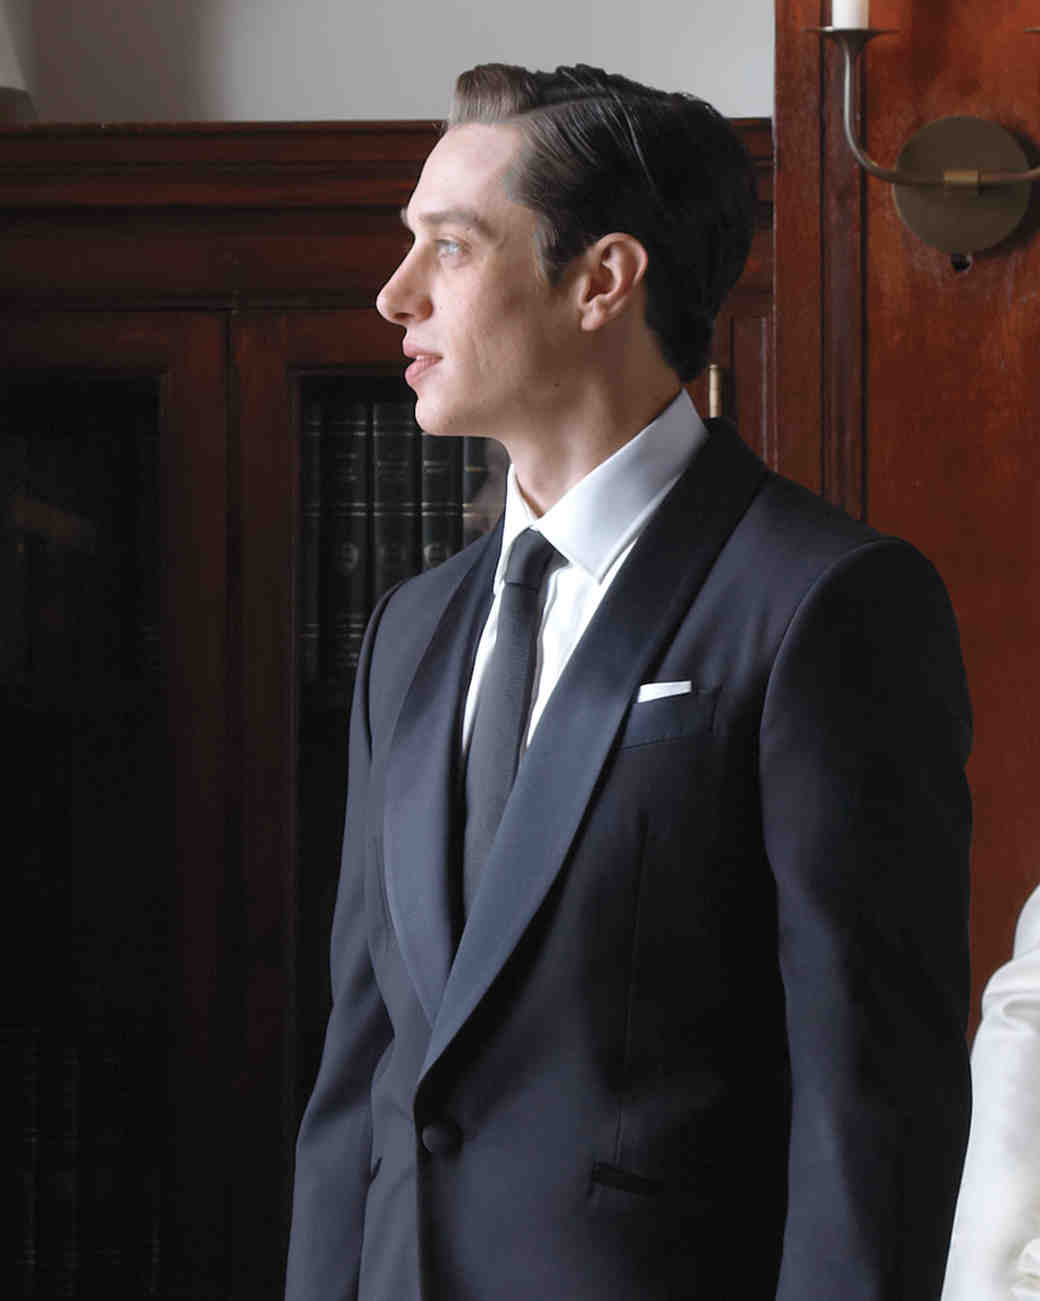 mad-men-wedding-suit-mmsw108757formal39-0315.jpg